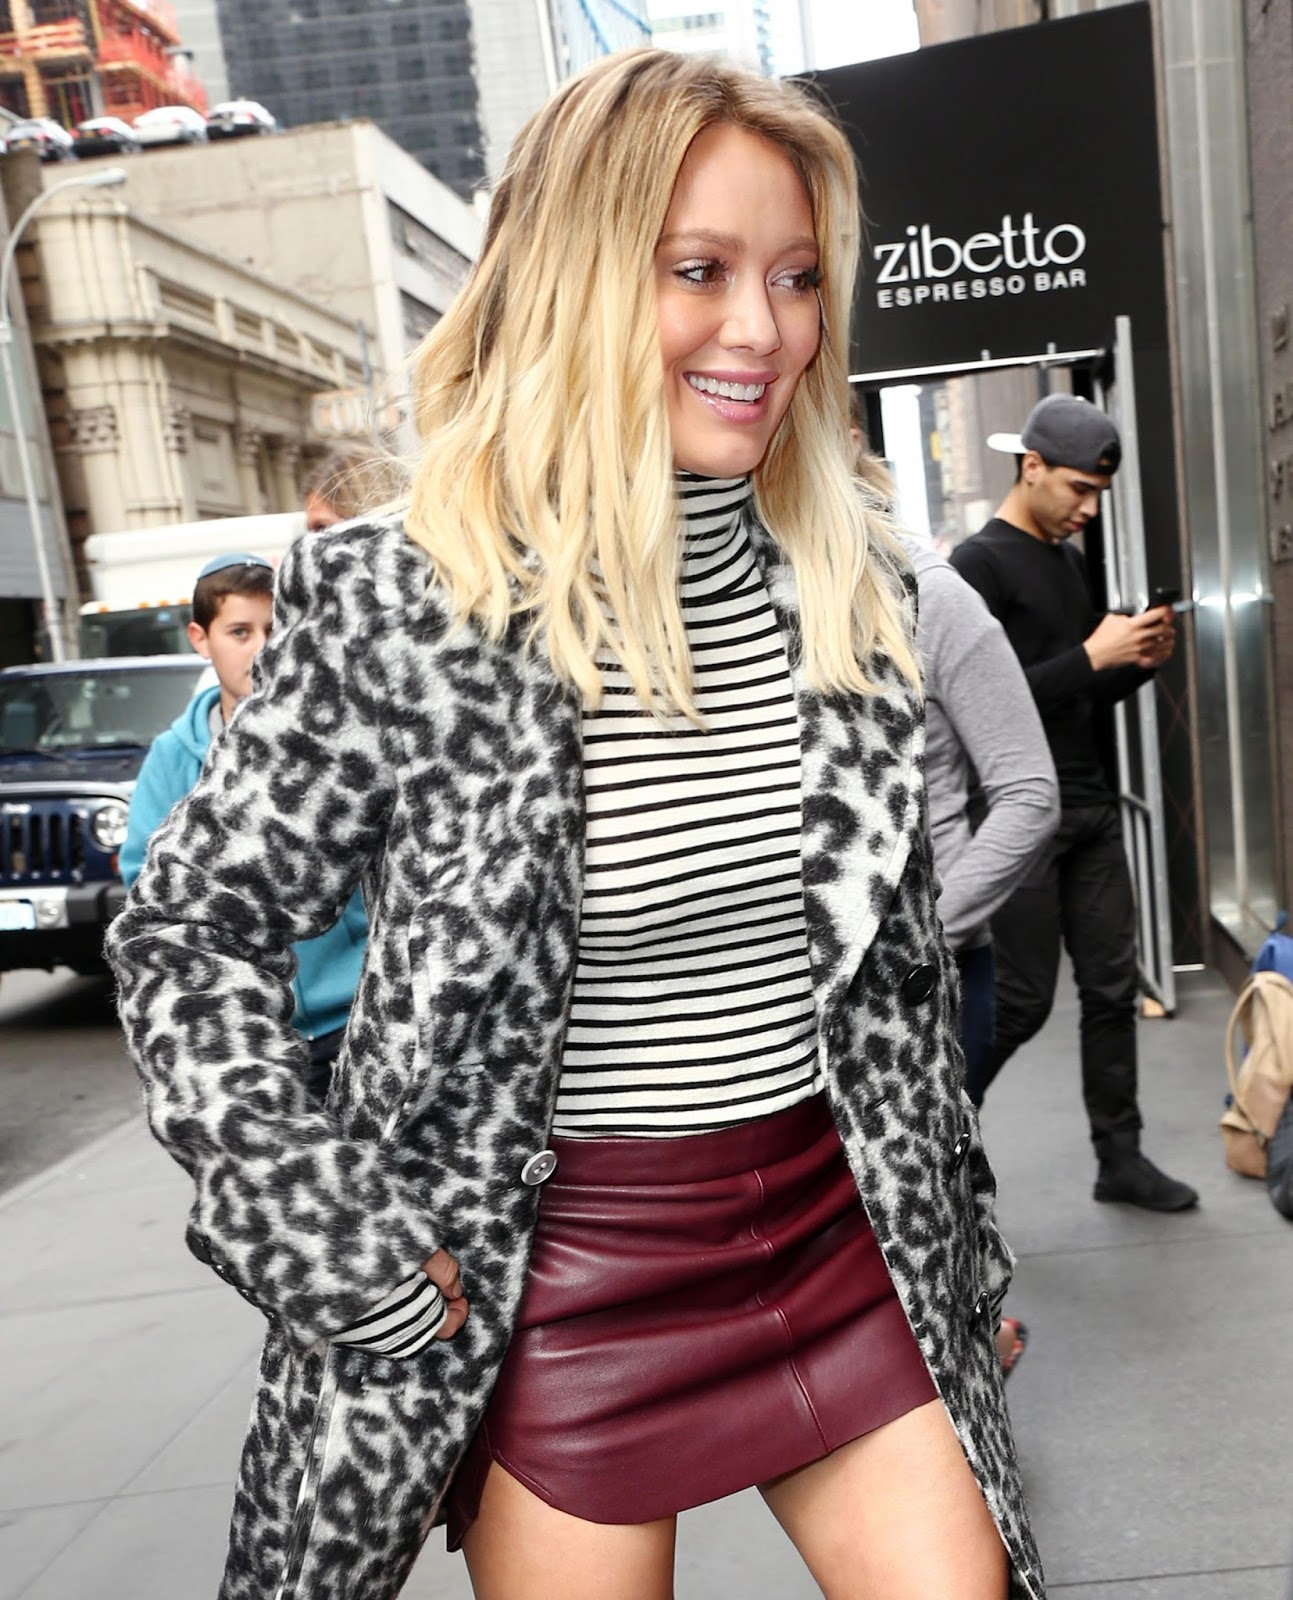 Apologise, but, hilary duff mini skirt consider, that